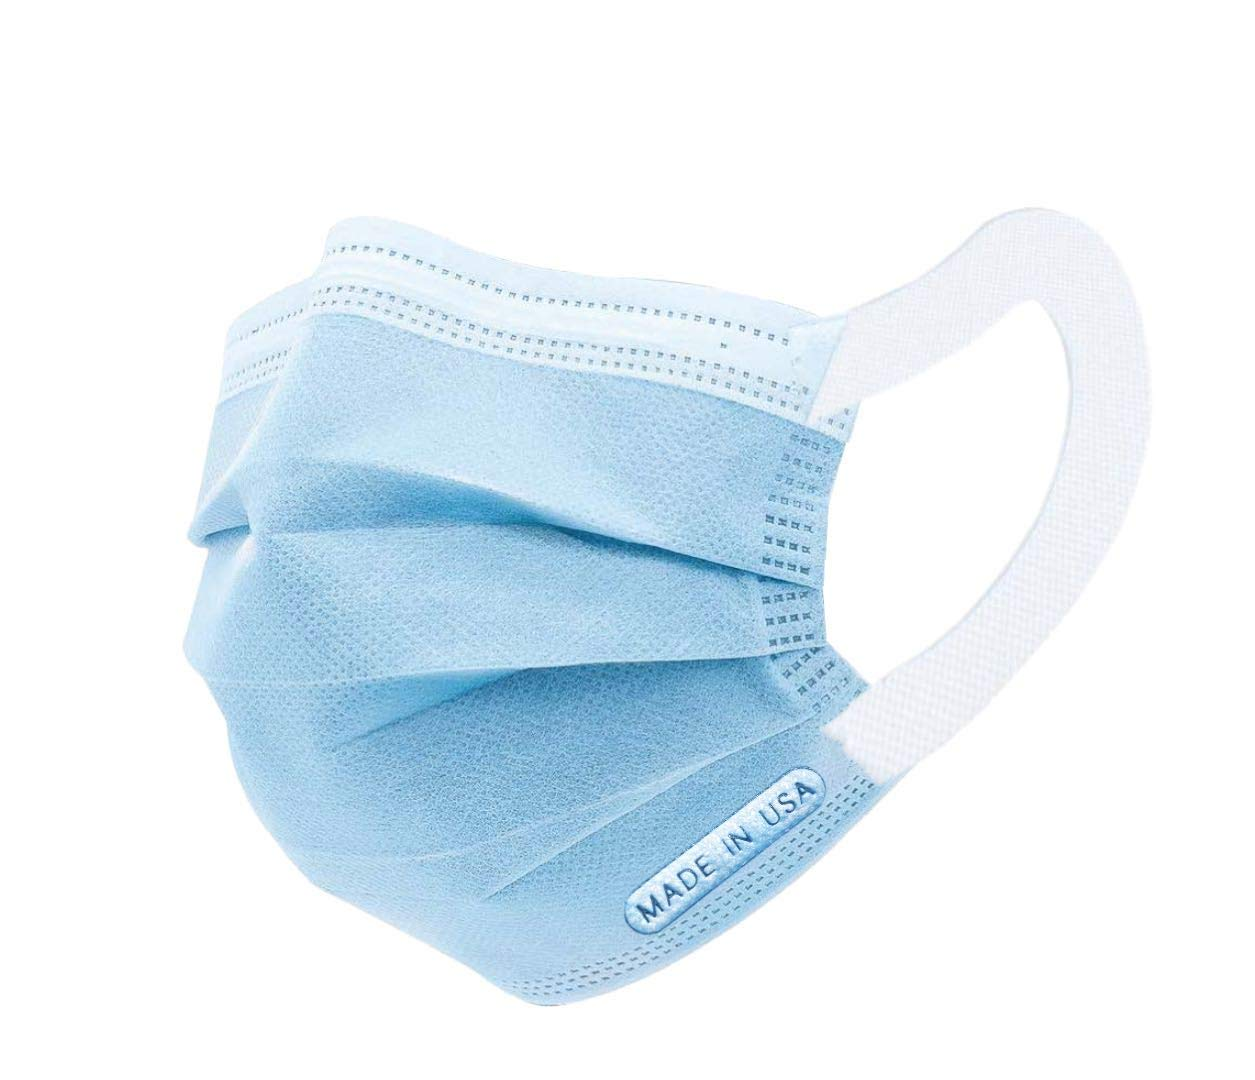 Made in USA, Disposable Face Mask 50 Pcs, 3-Ply, Comfort elastic earloop band, Personal protection